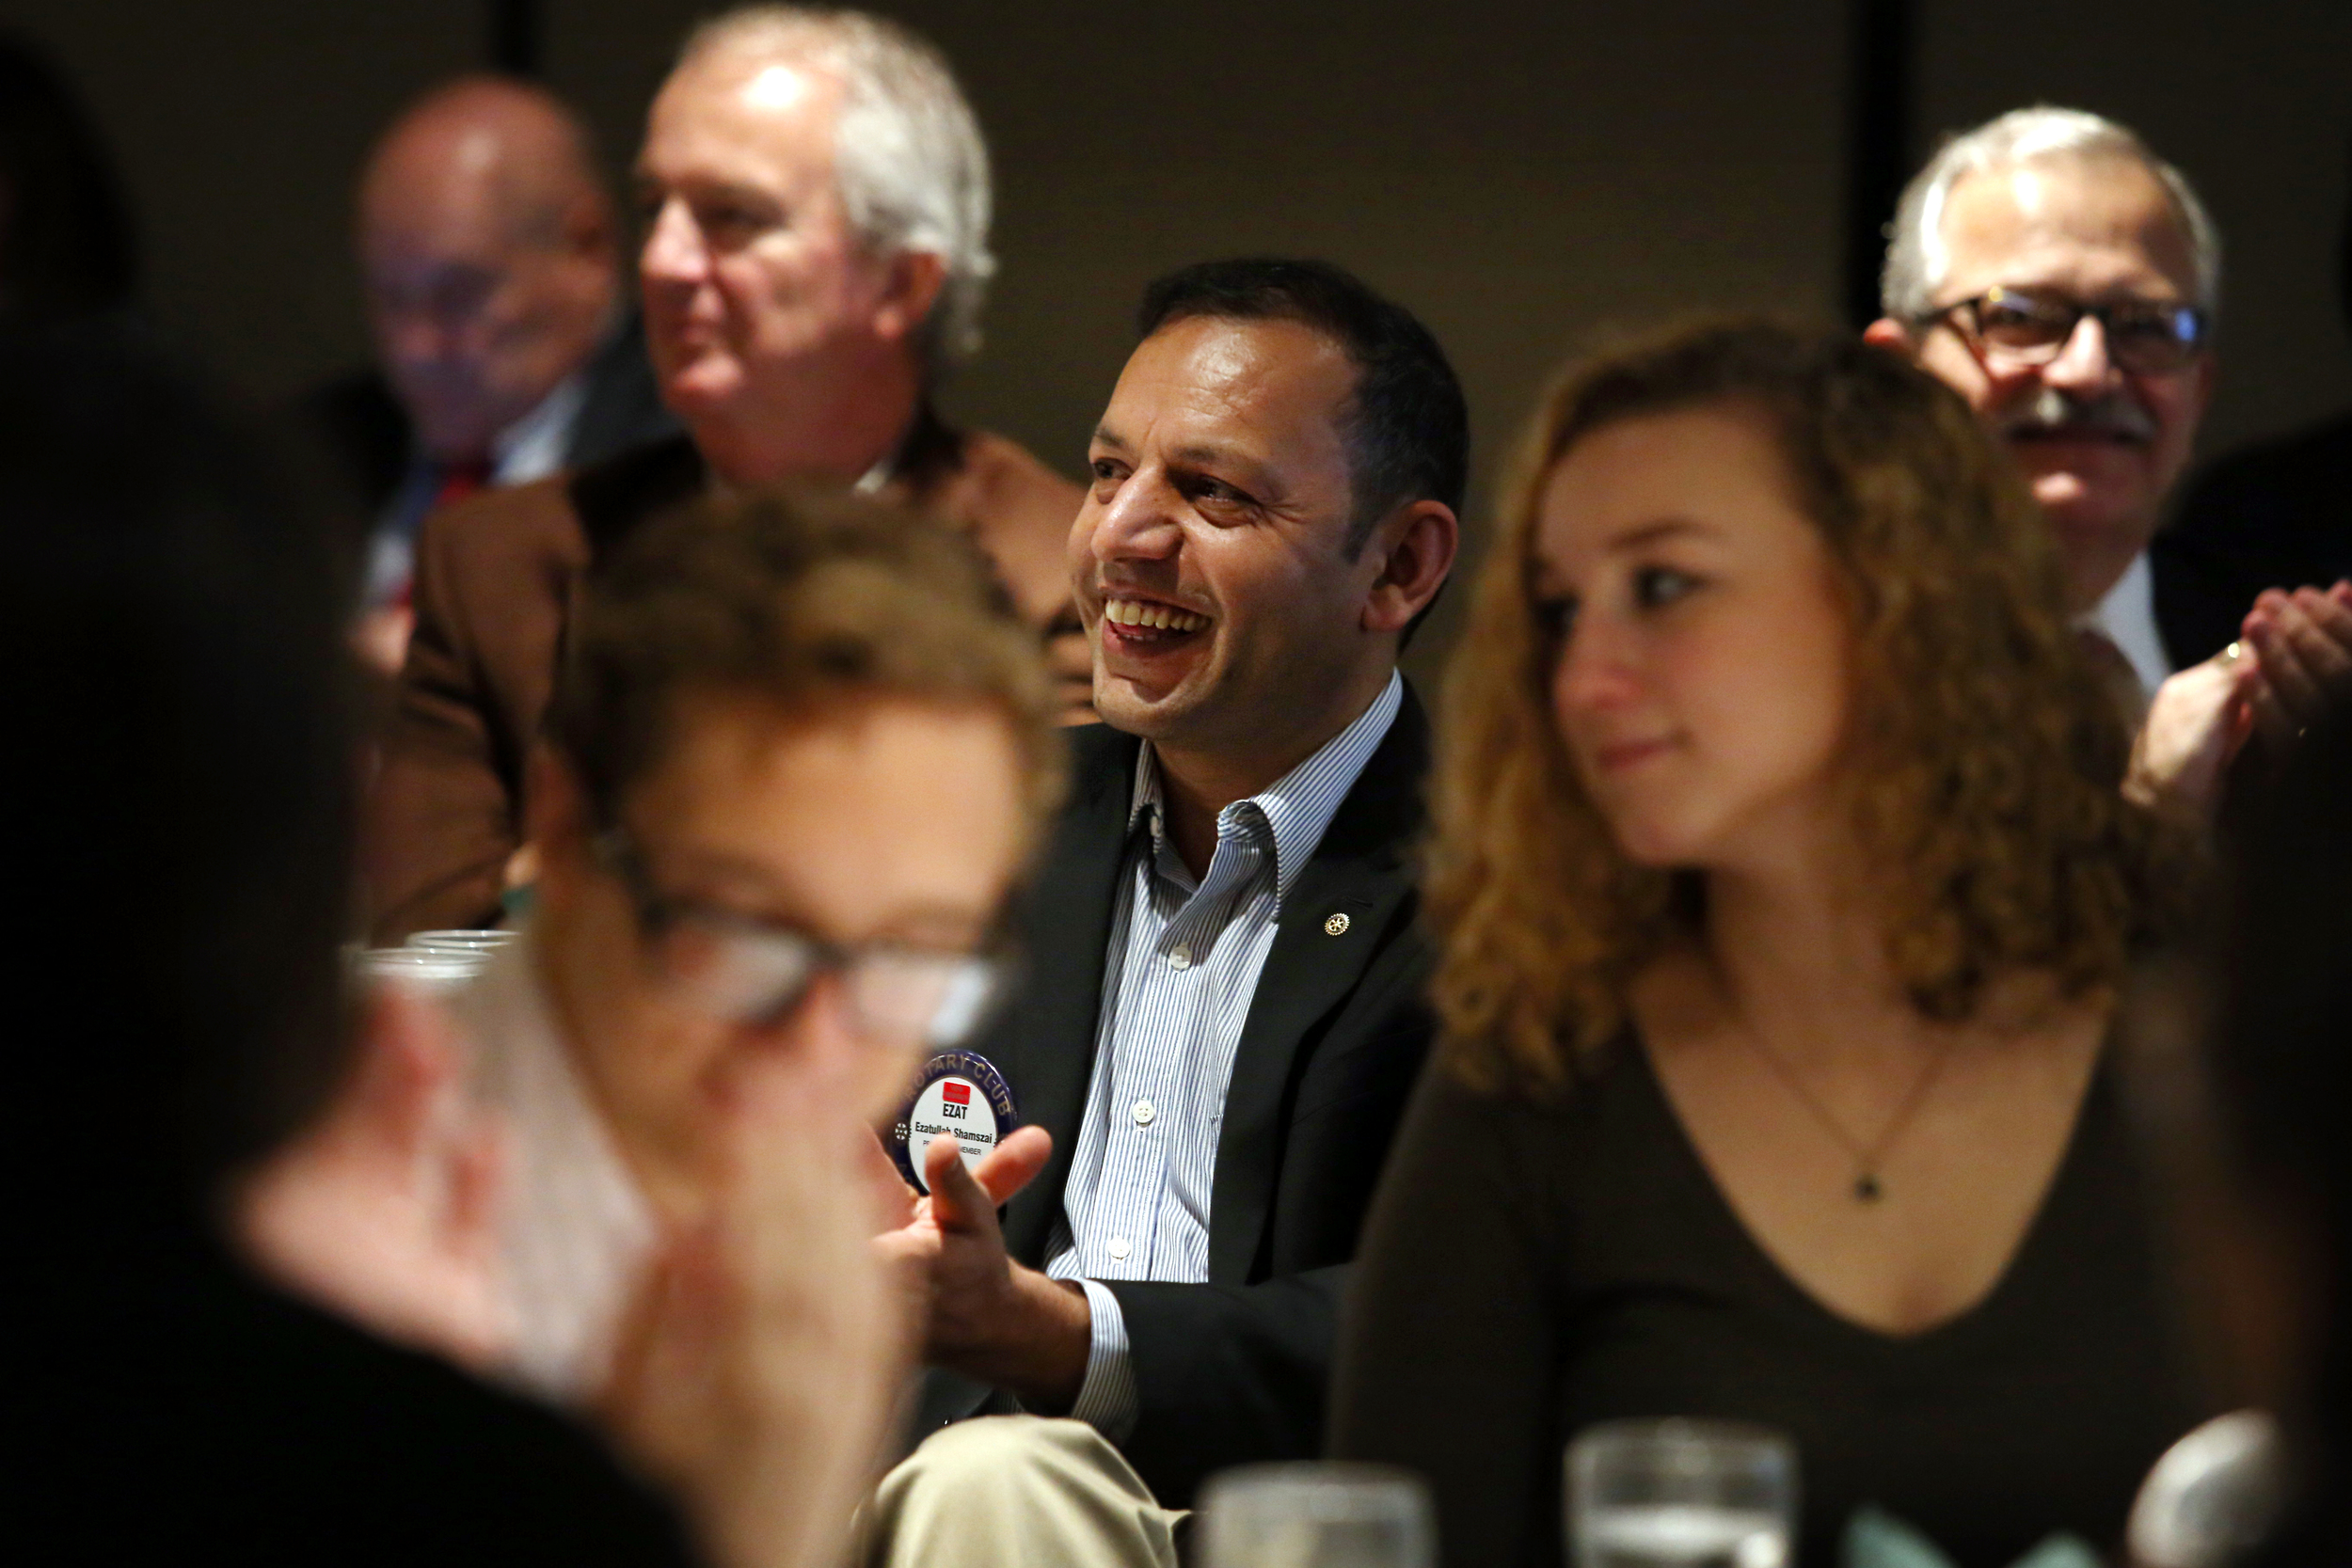 """Ezatullah listens to a speaker at the Rotary Club of Lansing. Ezatullah wants to stay involved in the community so he can meet more people. """"I'm trying a lot to talk to people…to know more about the culture…I like to be engaged with the community. Being social just opens the door for you,"""" said Ezatullah."""